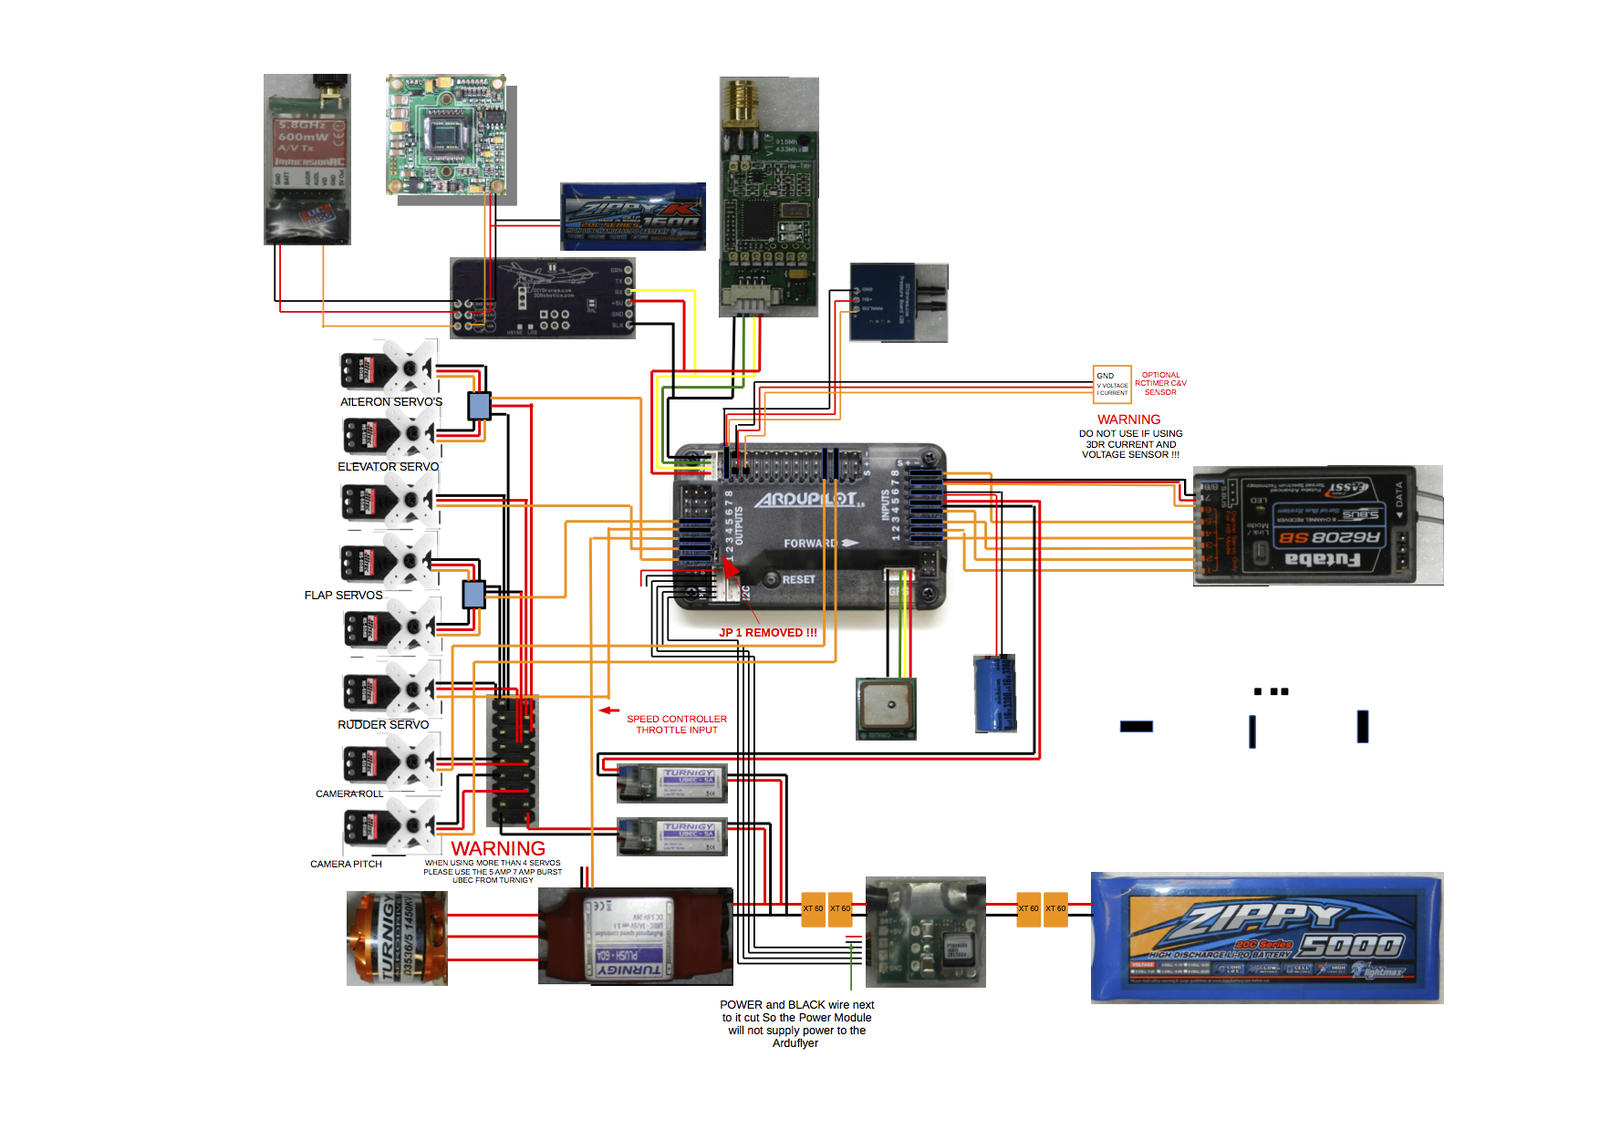 quadcopter esc wiring diagram wiring diagram online arducopter esc wiring-diagram arducopter quadcopter wiring diagram wiring diagram libraries quadcopter esc wiring diagram